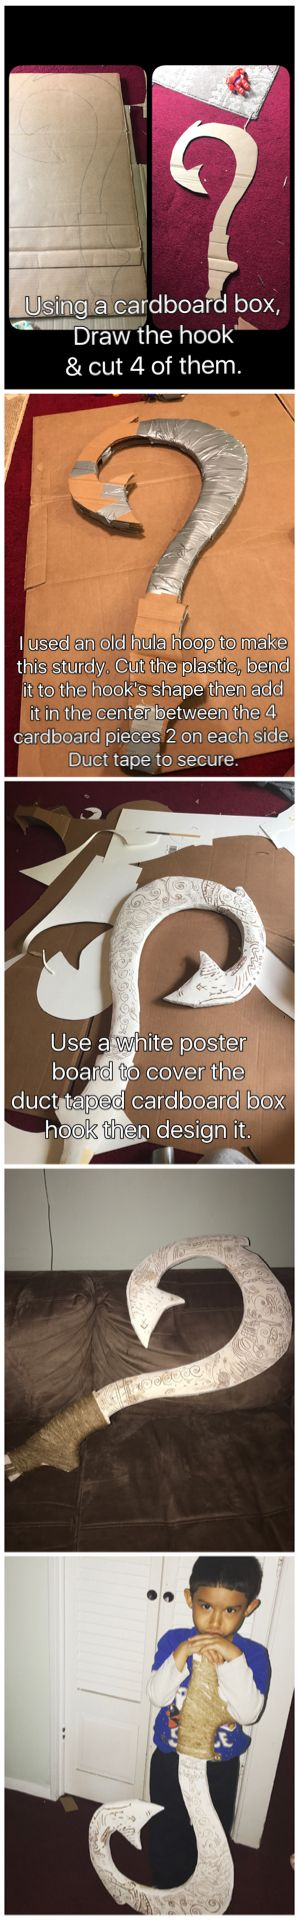 DIY Maui's Magical Fish Hook Using a Cardboard Box.